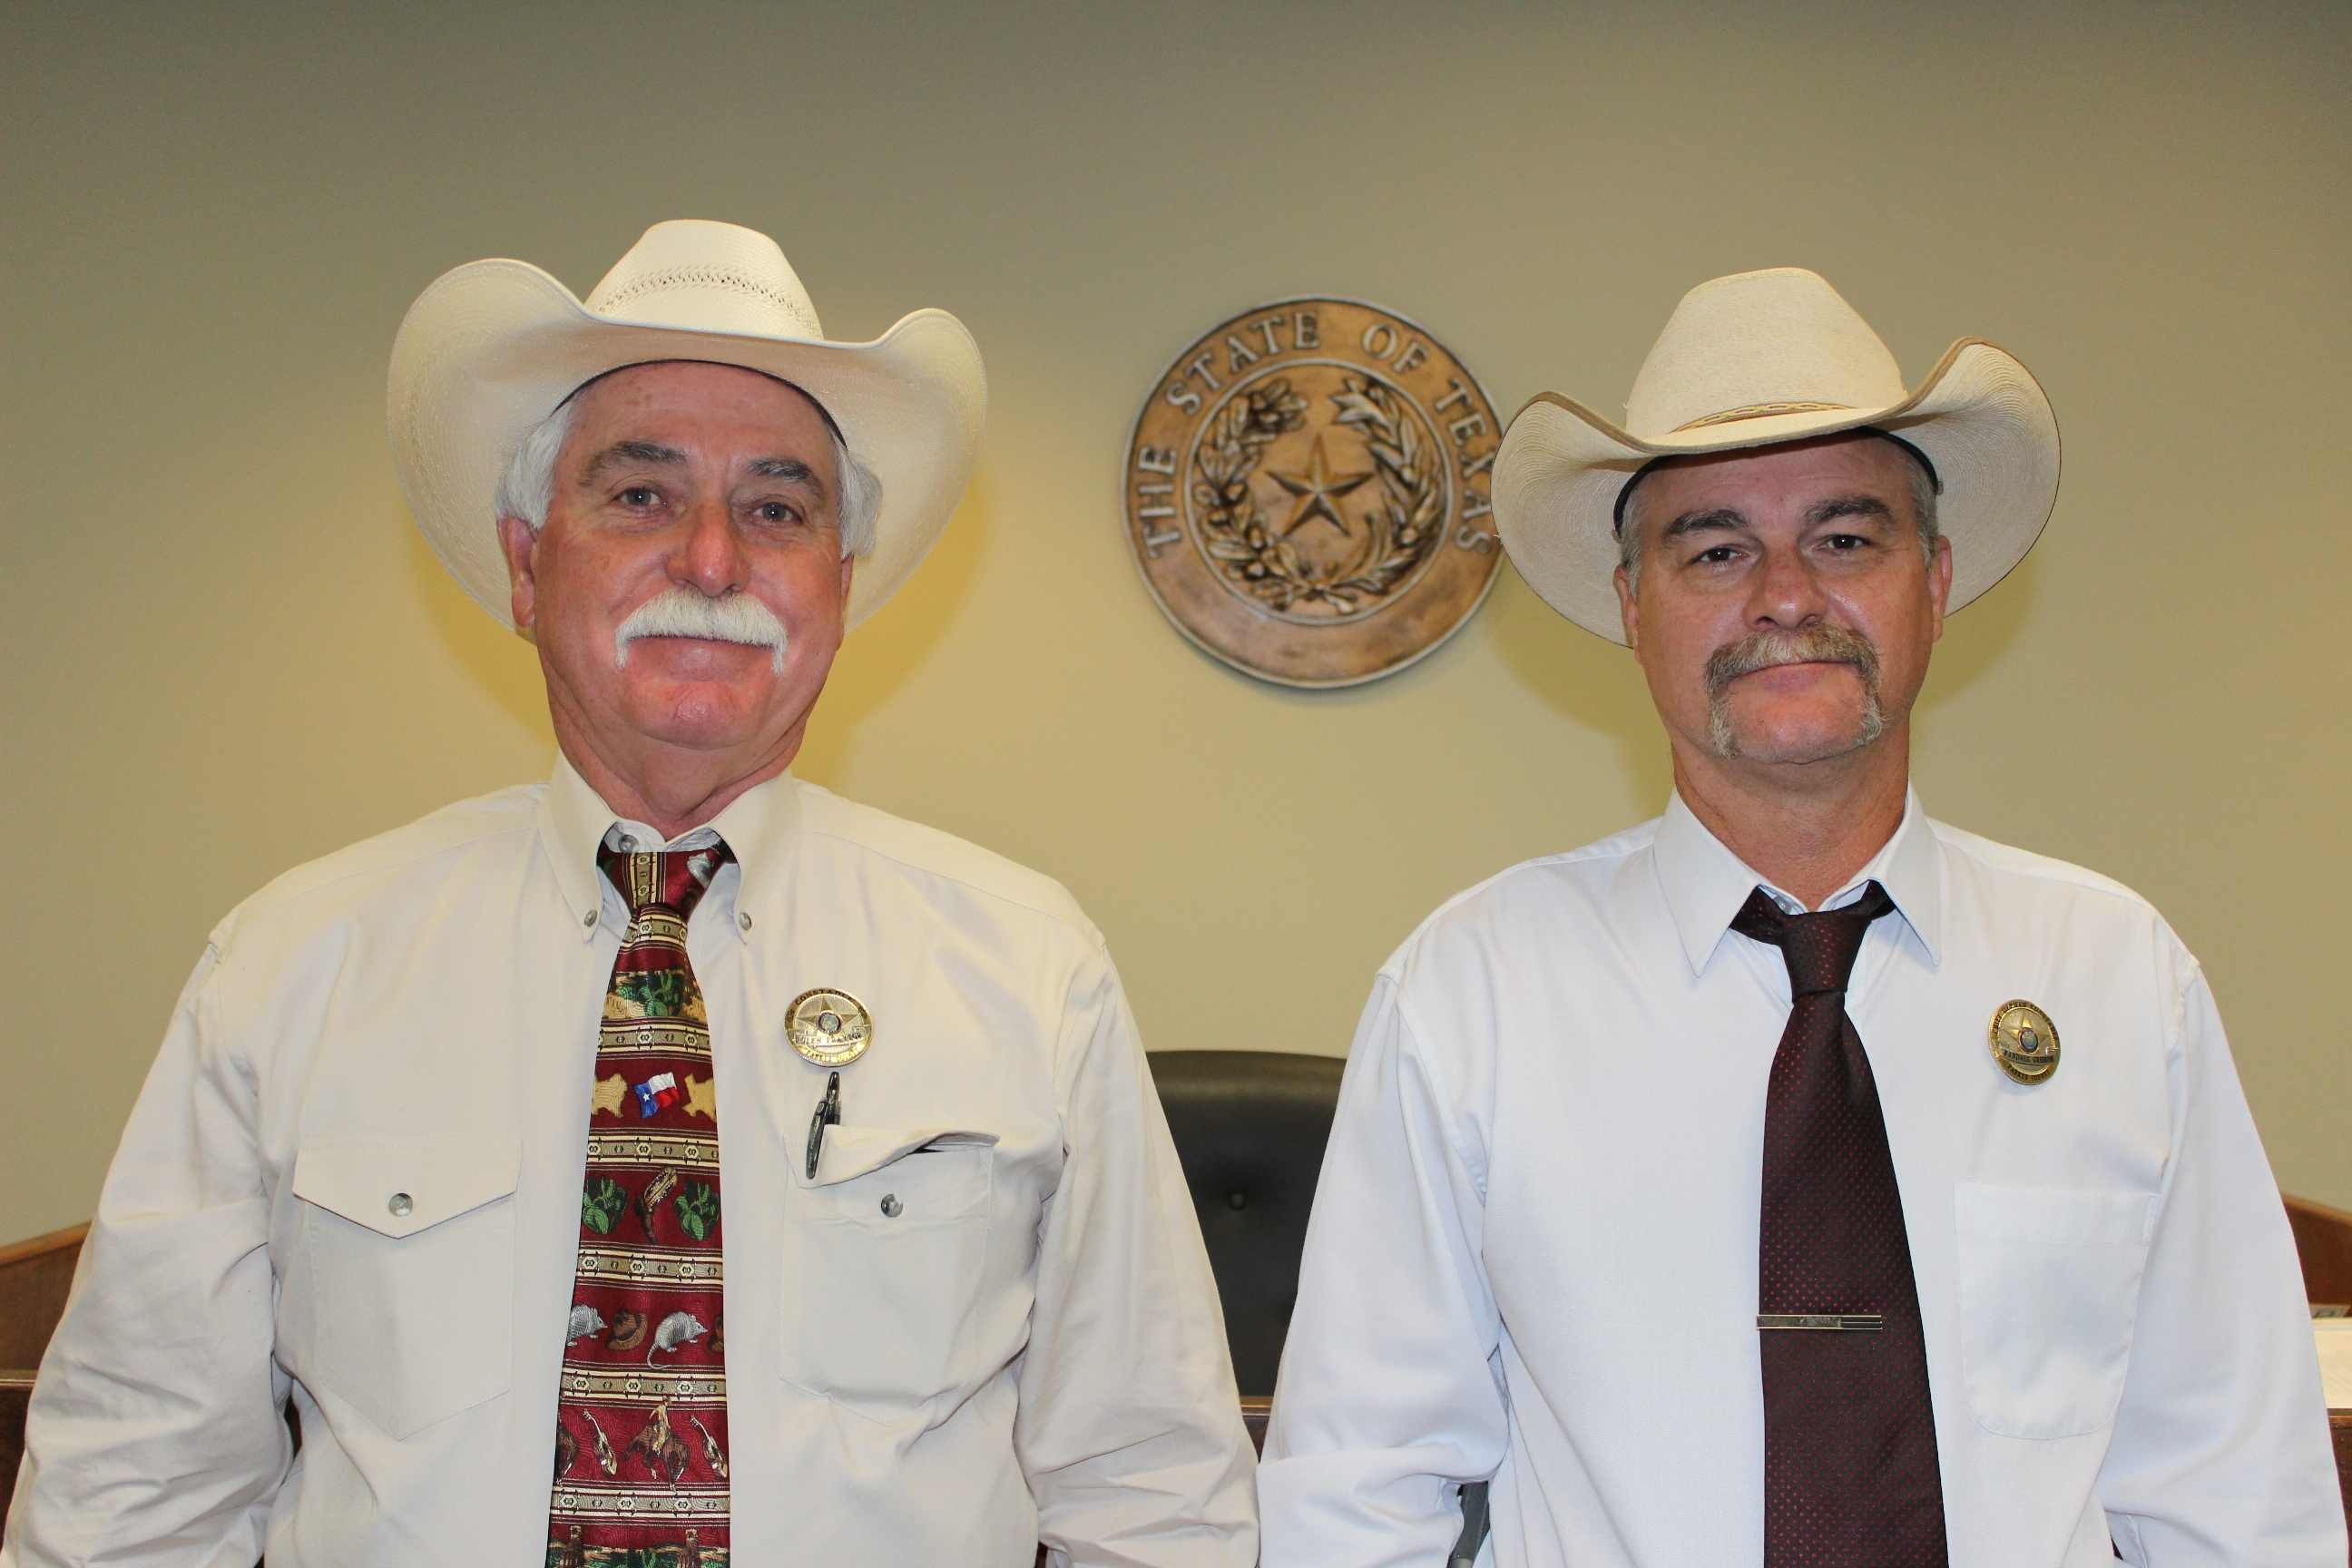 Constable Glen Praytor and Deputy Constable Randall Grissom.jpg